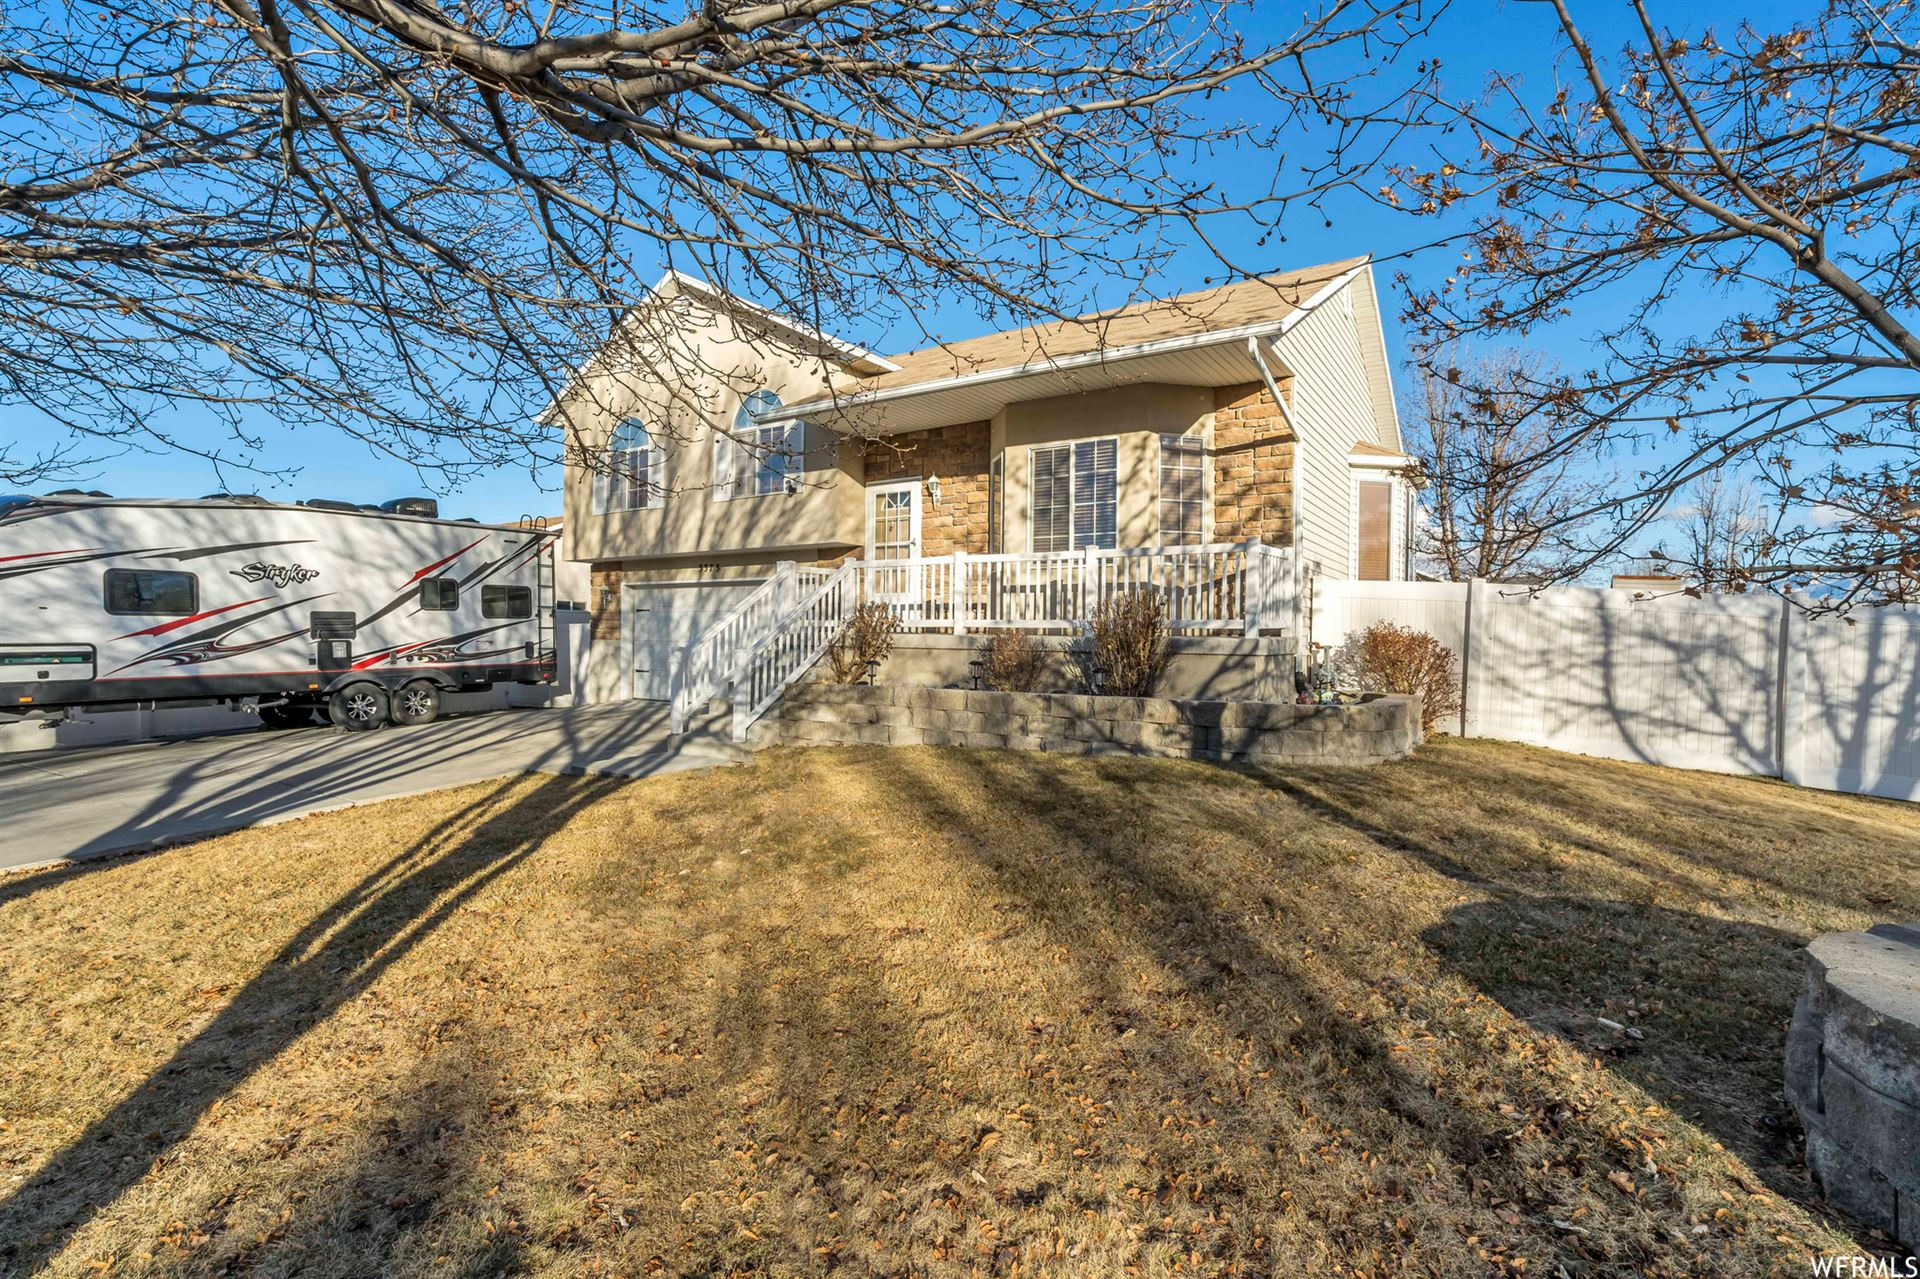 Photo of 3373 S TIMERON W DR, West Valley City, UT 84128 (MLS # 1720943)